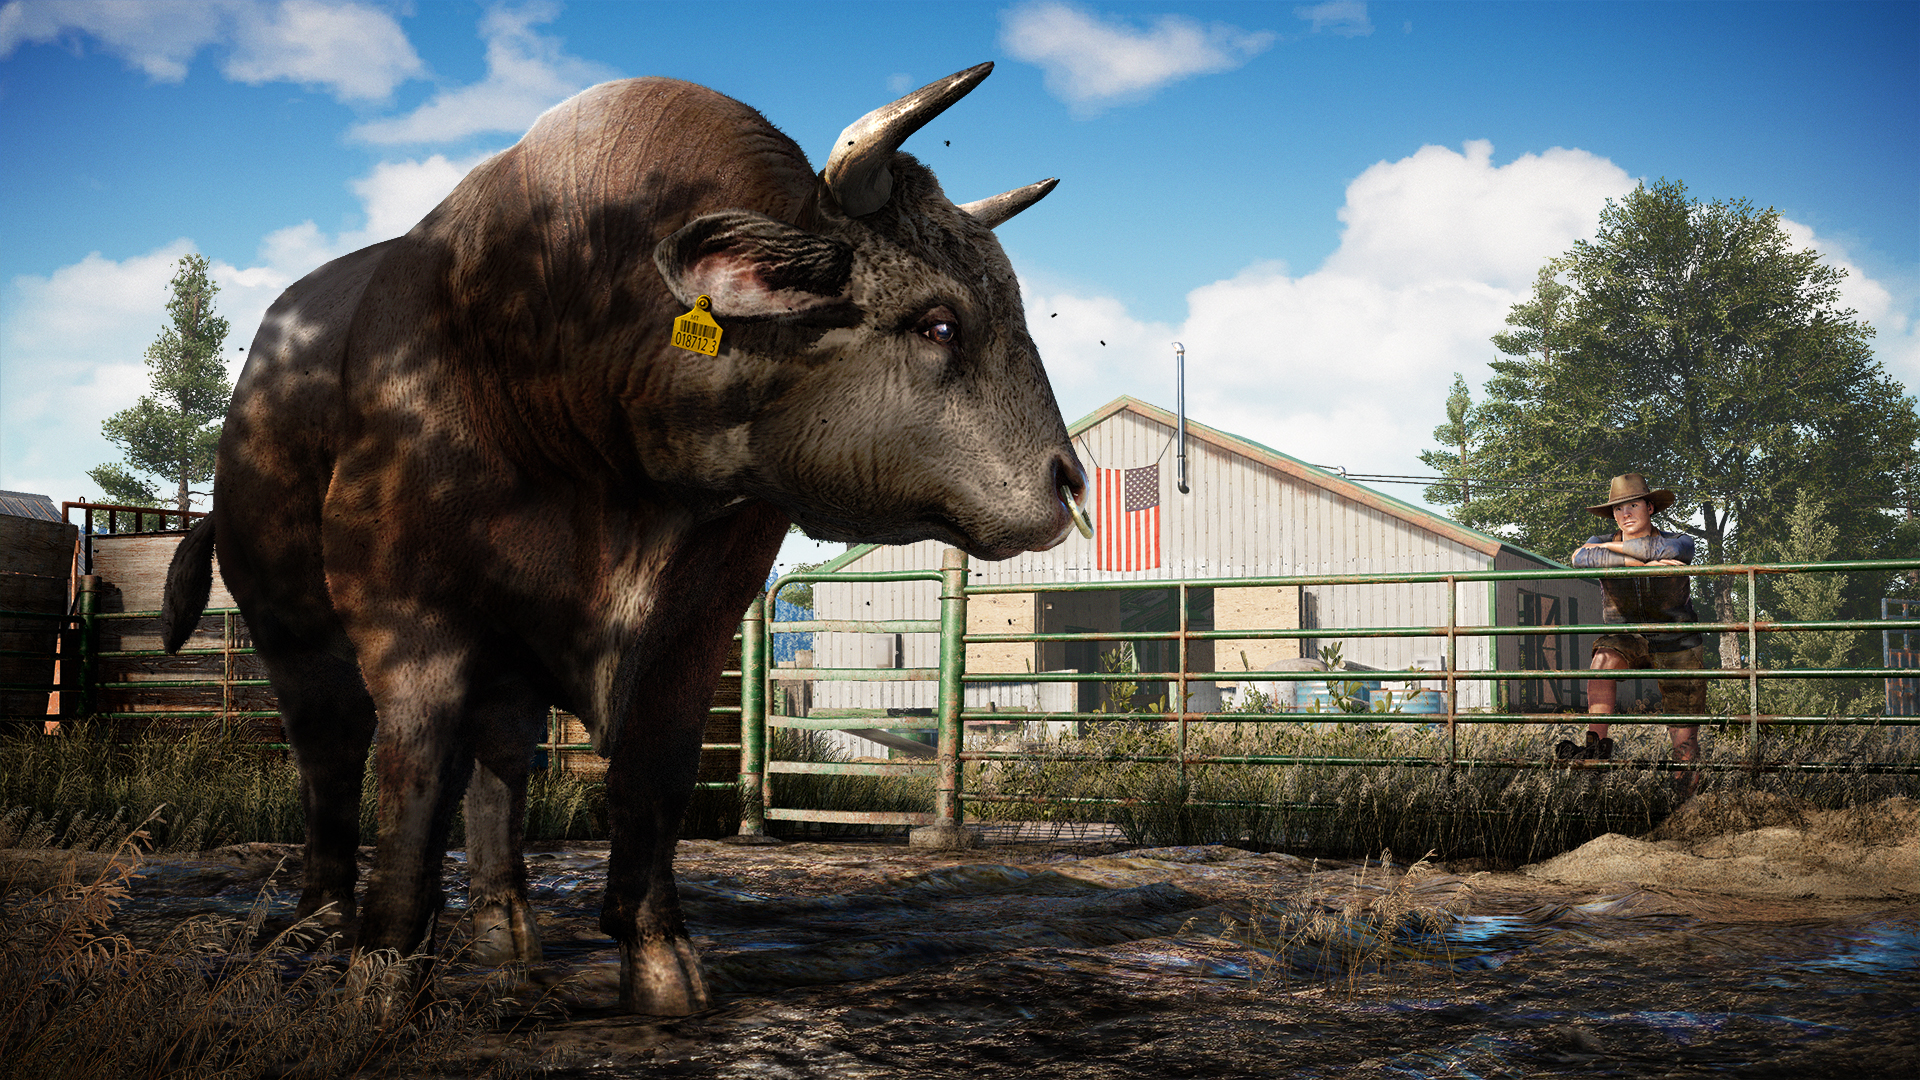 far cry 5 release date gameplay villains vehicles animals